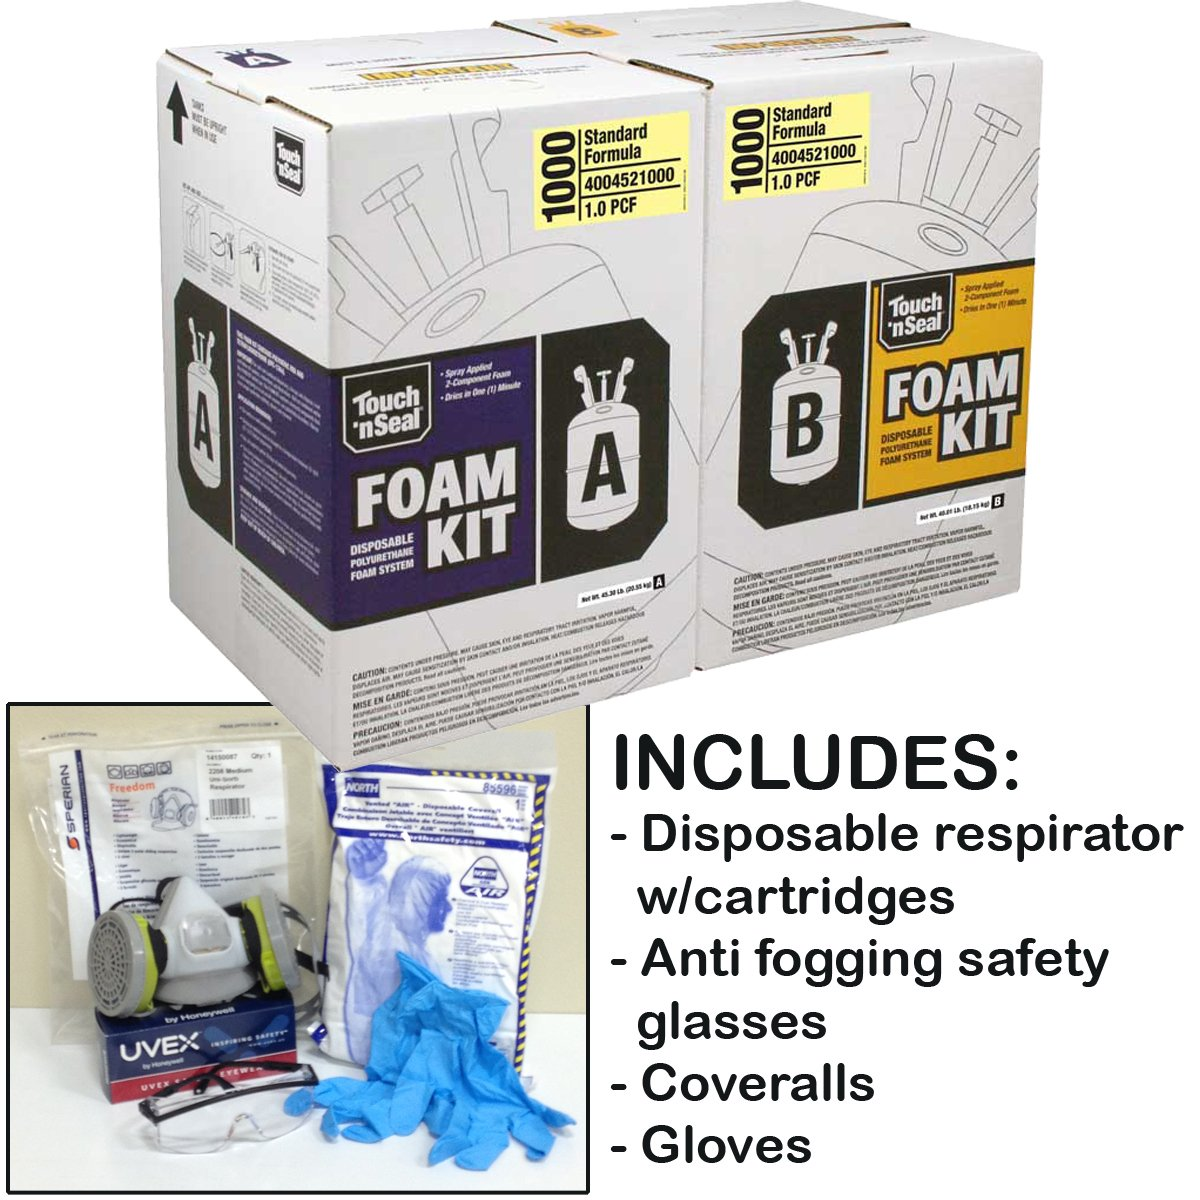 Touch n' Seal U2 1000BF 1.0 PCF Fire Retardant Open Cell Polyurethane Spray Foam Insulation Kit-with *BONUS* Protective Gear (Regular Gear)